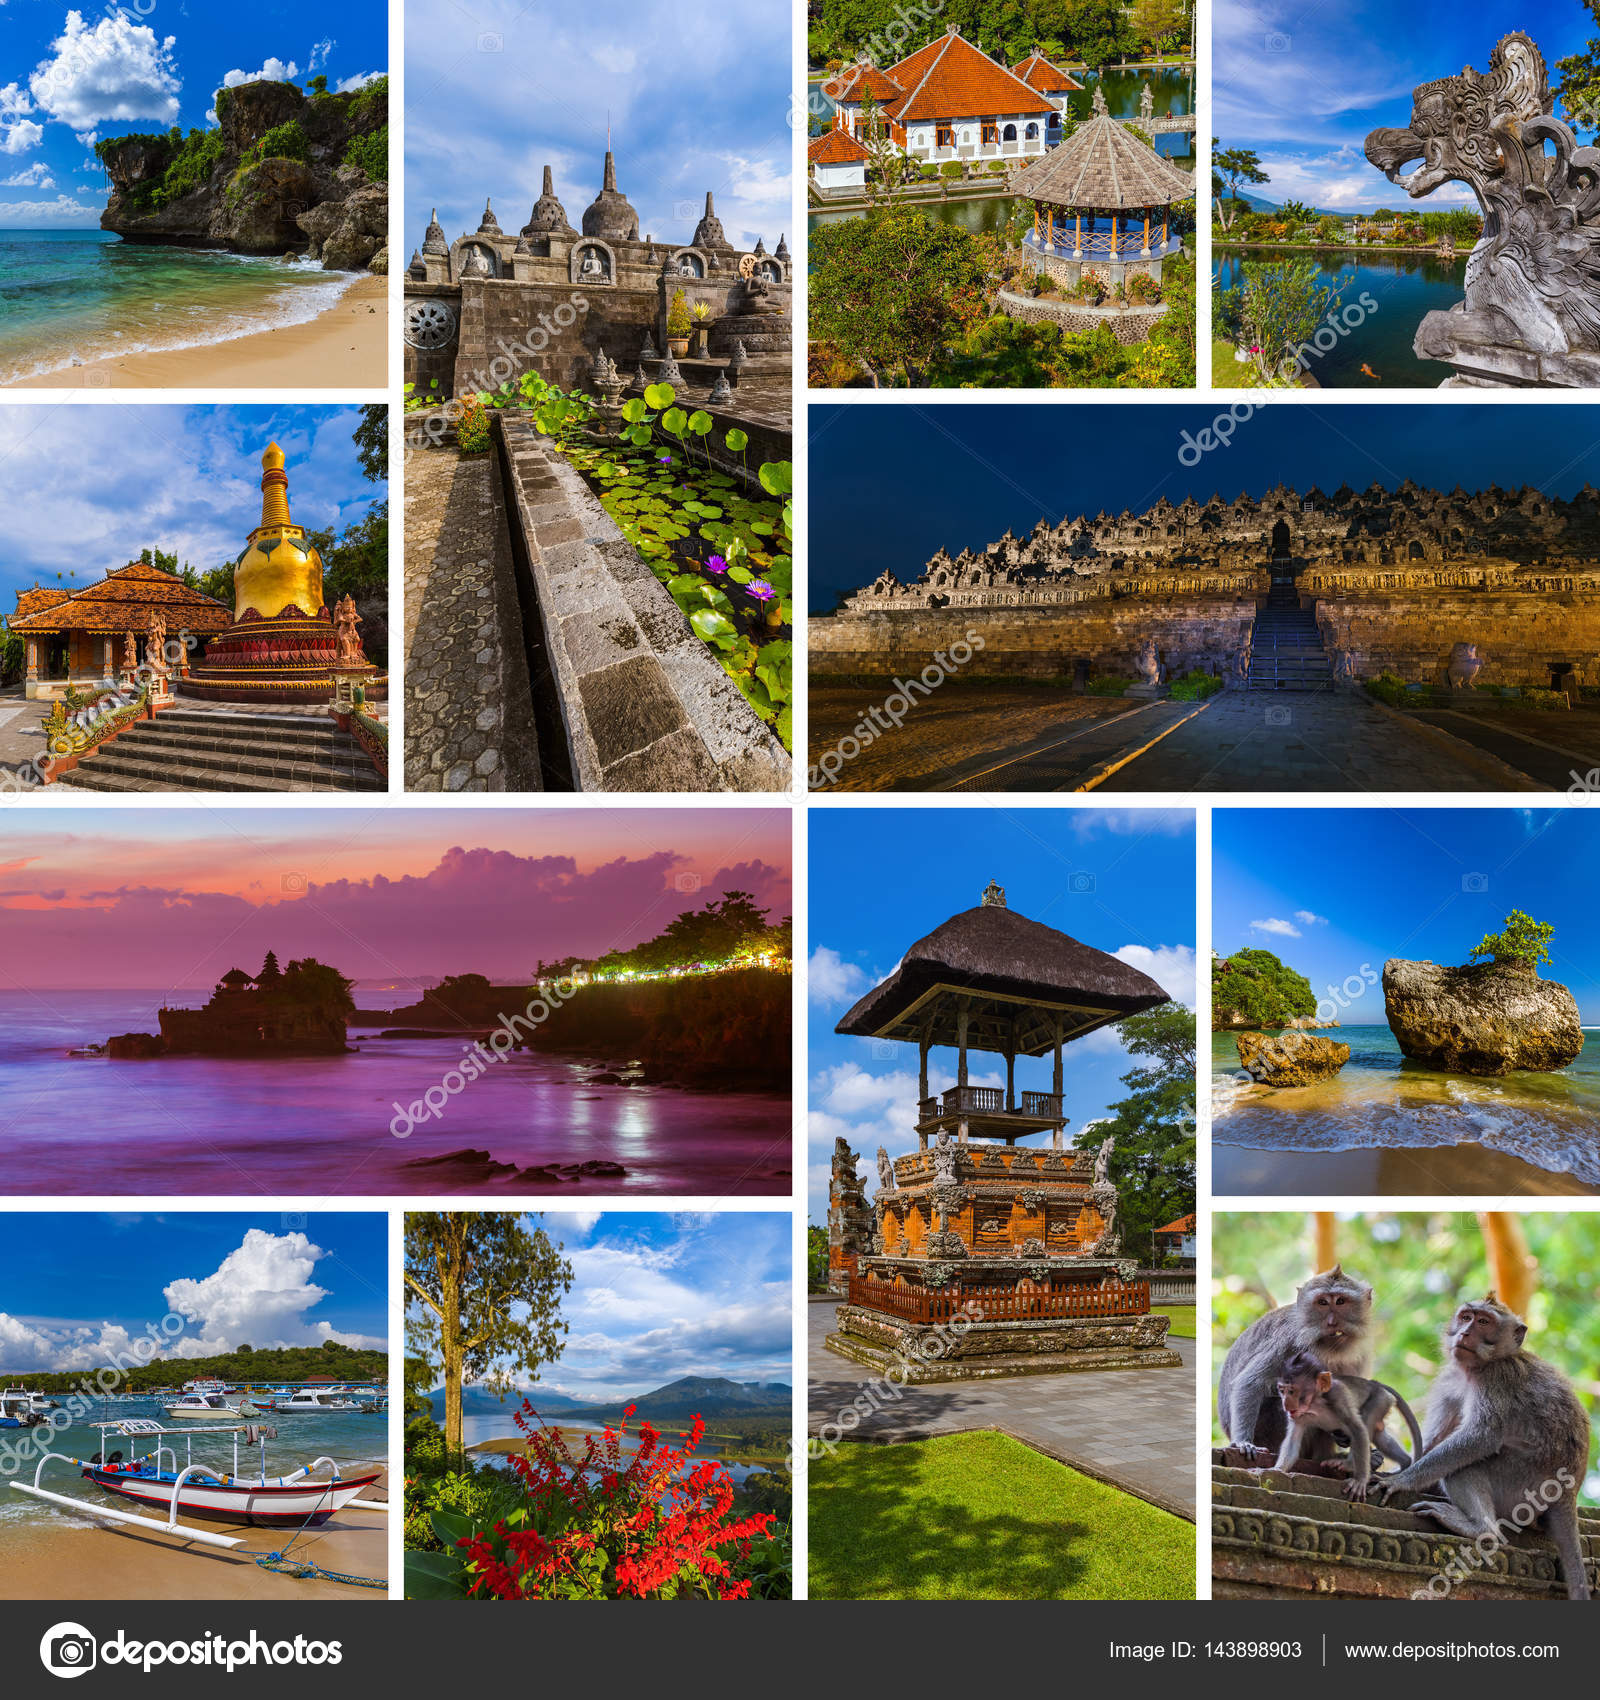 Pictures Bali Indonesia Collage Of Bali Indonesia Travel Images My Photos Stock Photo C Violin 143898903